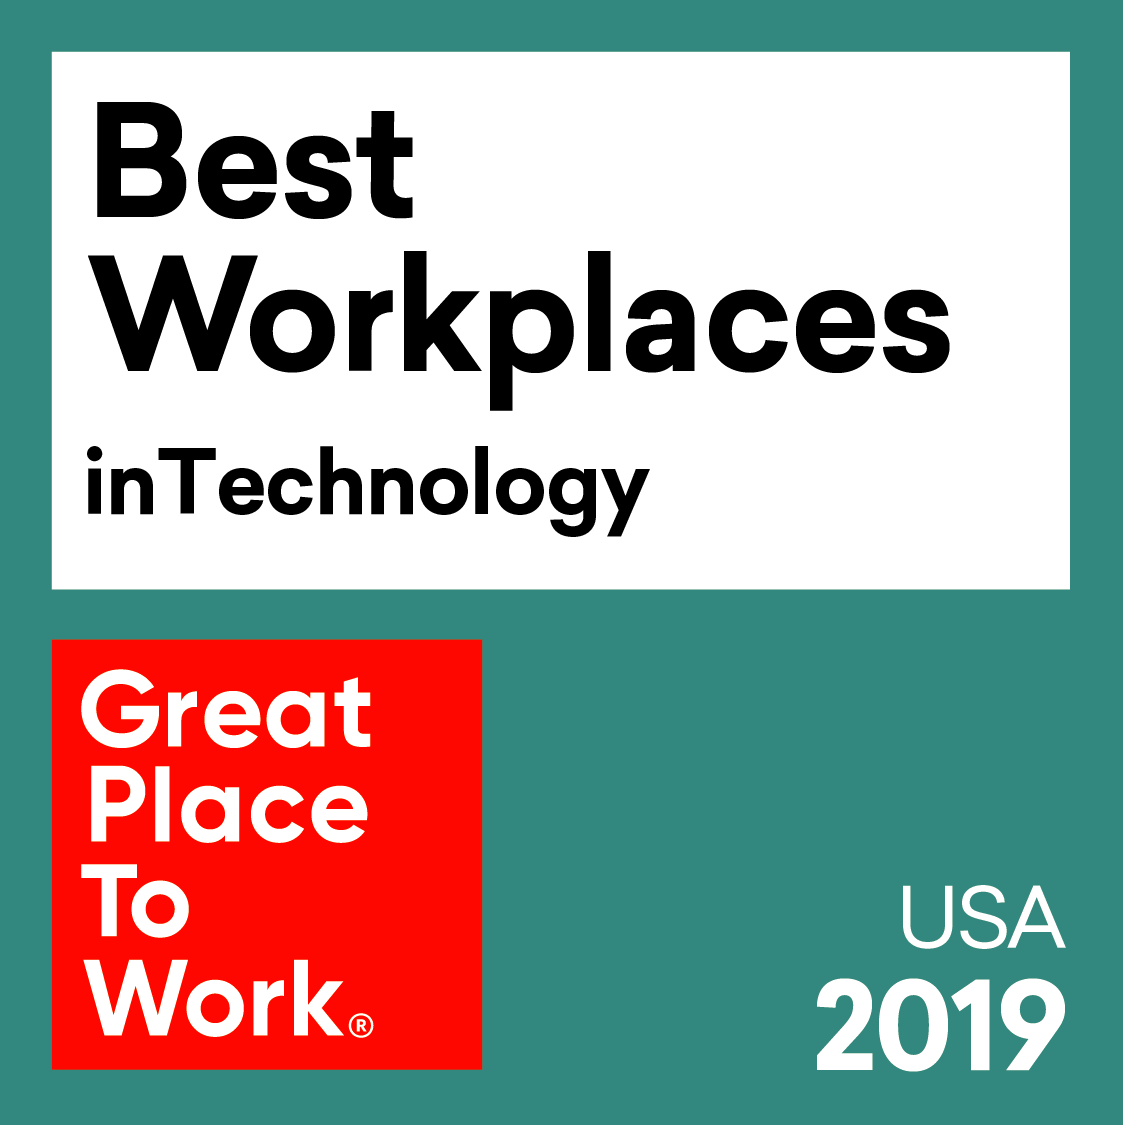 Best Workplaces in Technology